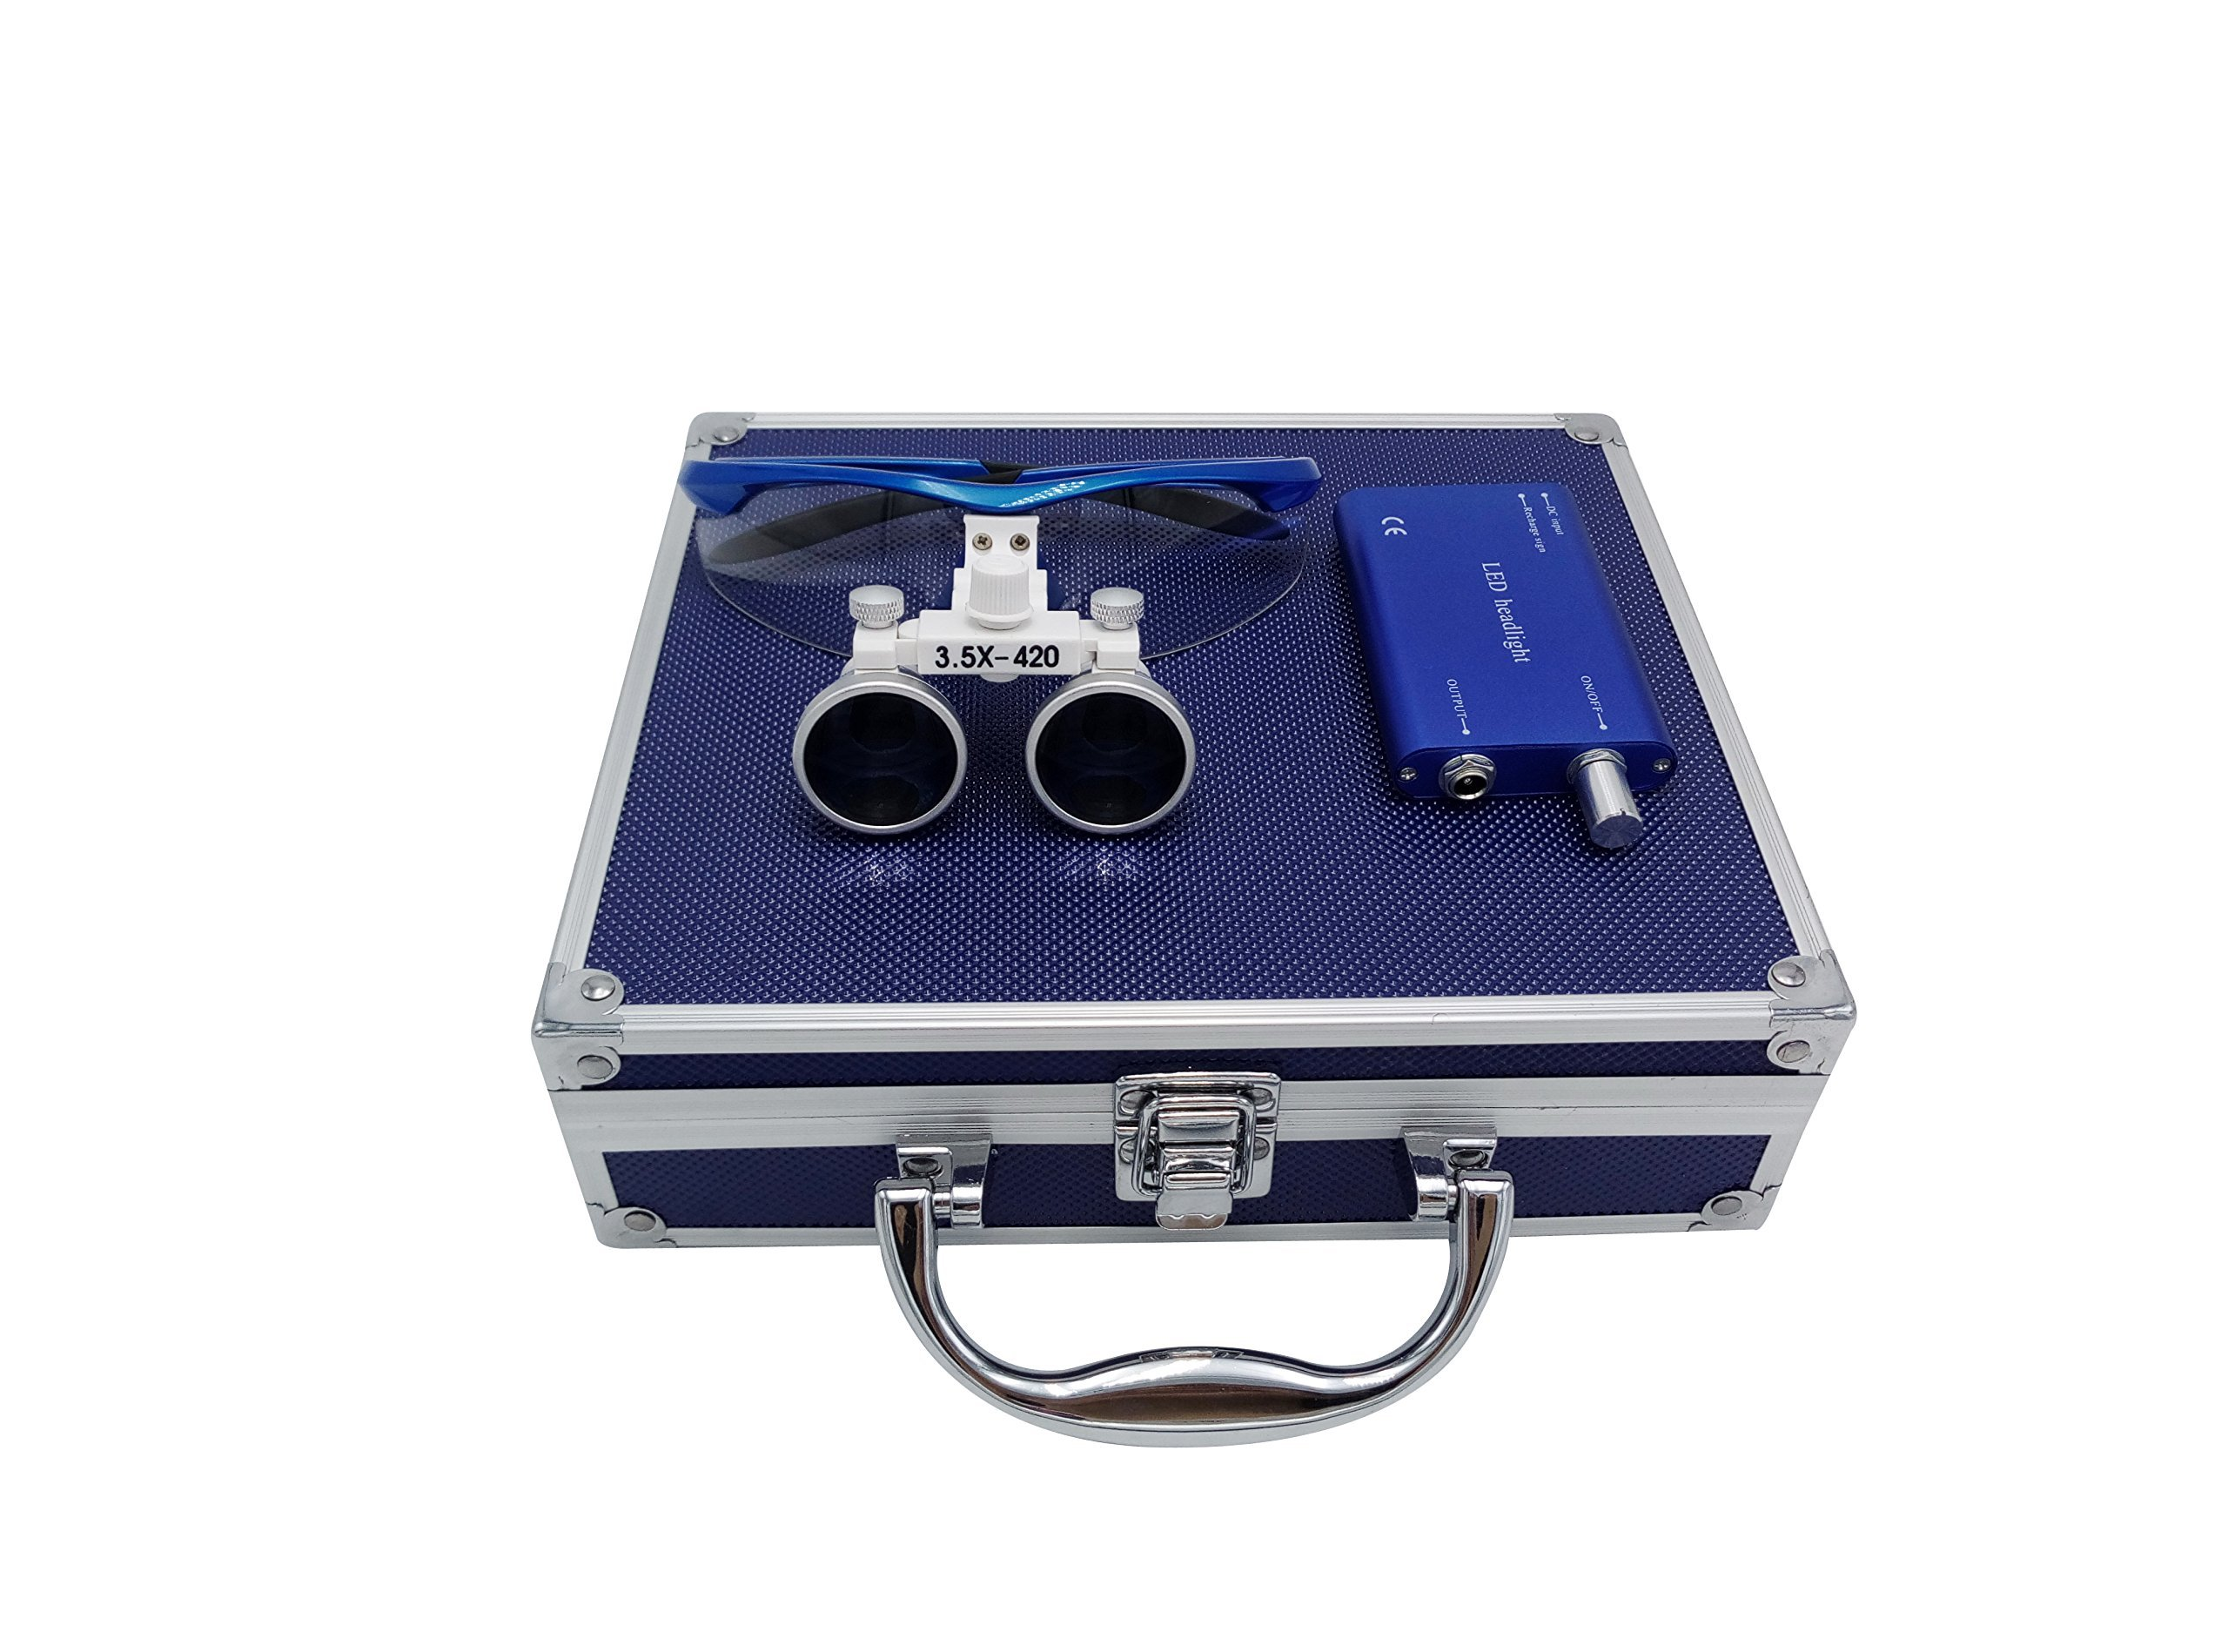 Aries Outlets YJ-01234678910111345-l 3.5 x 420mm Working Distance Surgical Binocular Loupes Optical Glass with LED Head Light Lamp and Aluminum Box, Blue